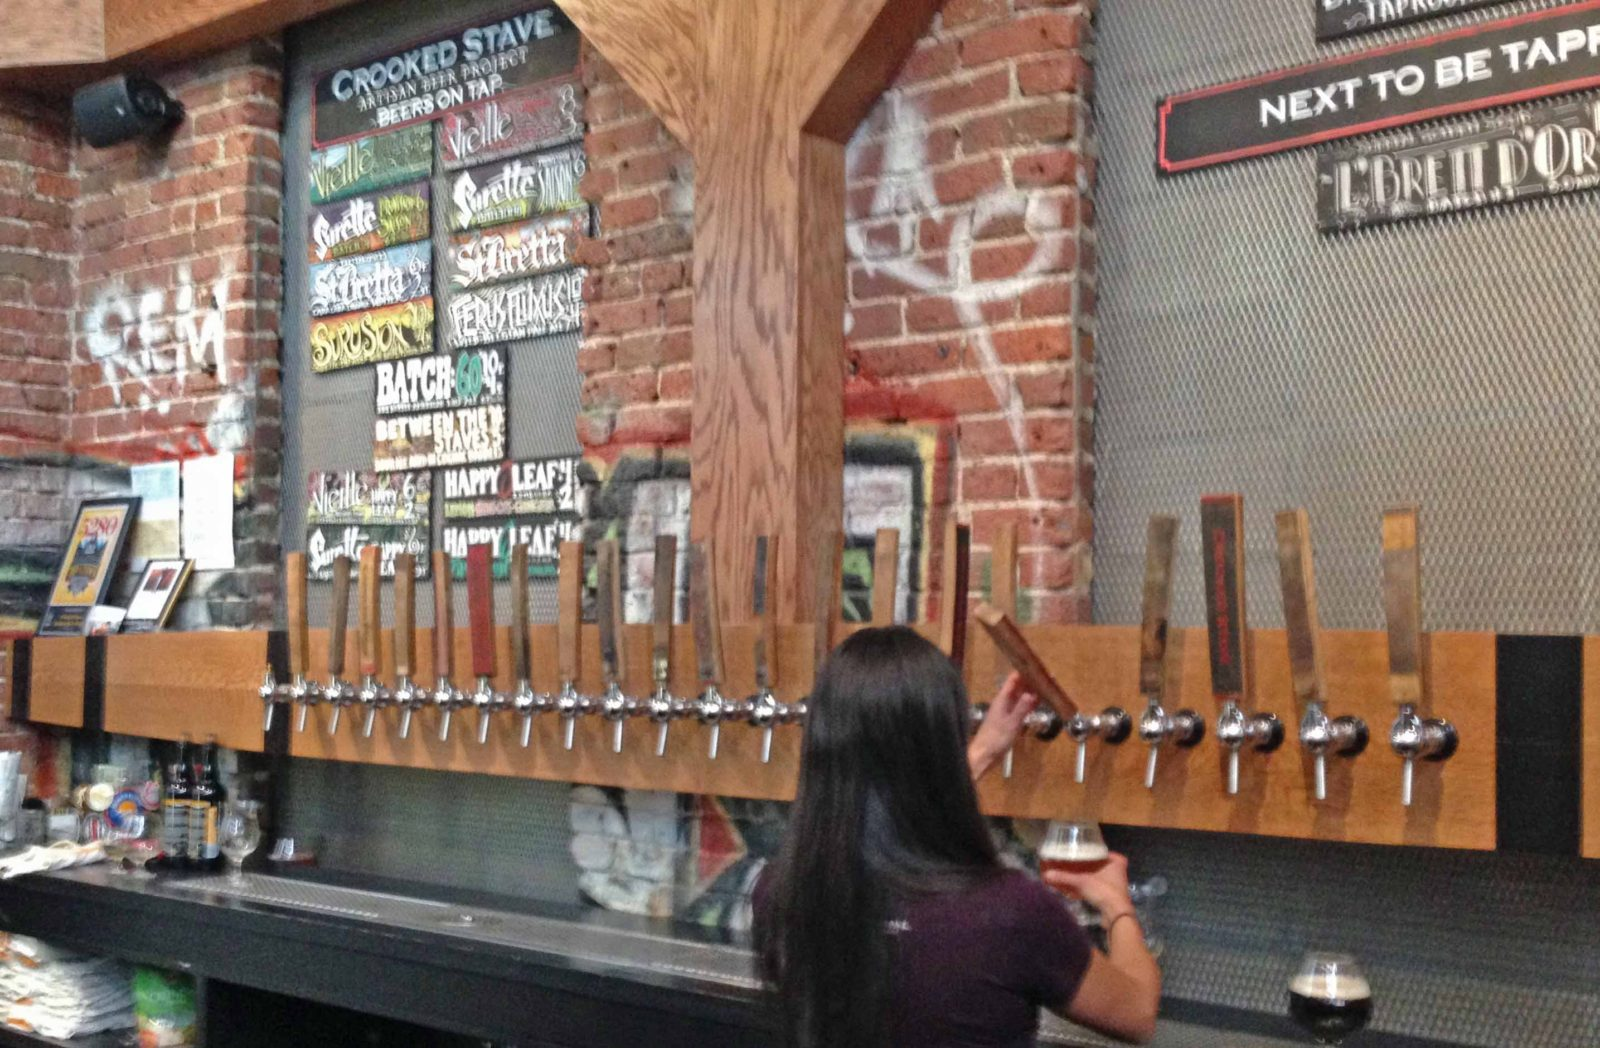 205. Crooked Stave Artisan Beer Project, Denver CO 2014